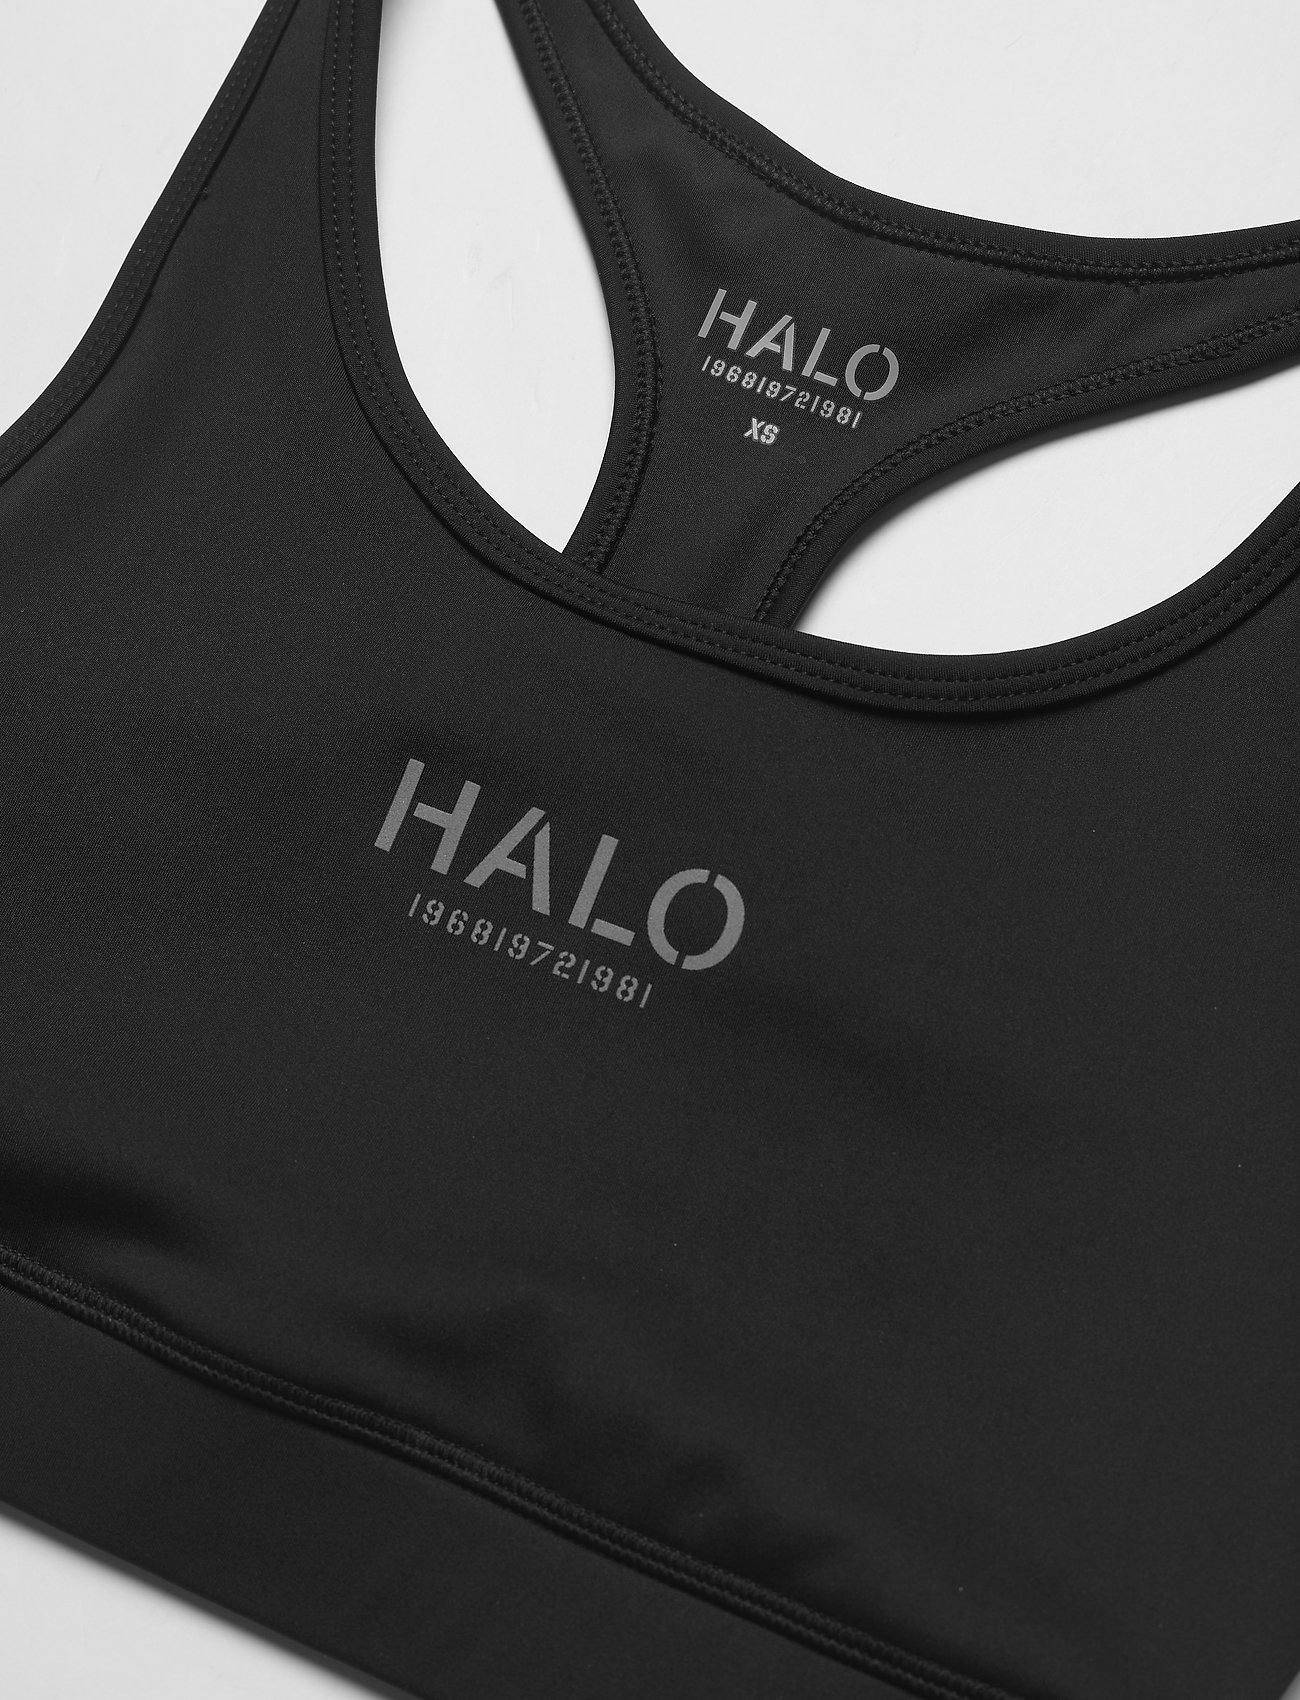 HALO - HALO WOMENS BRATOP - sport-bh: hög support - black - 2